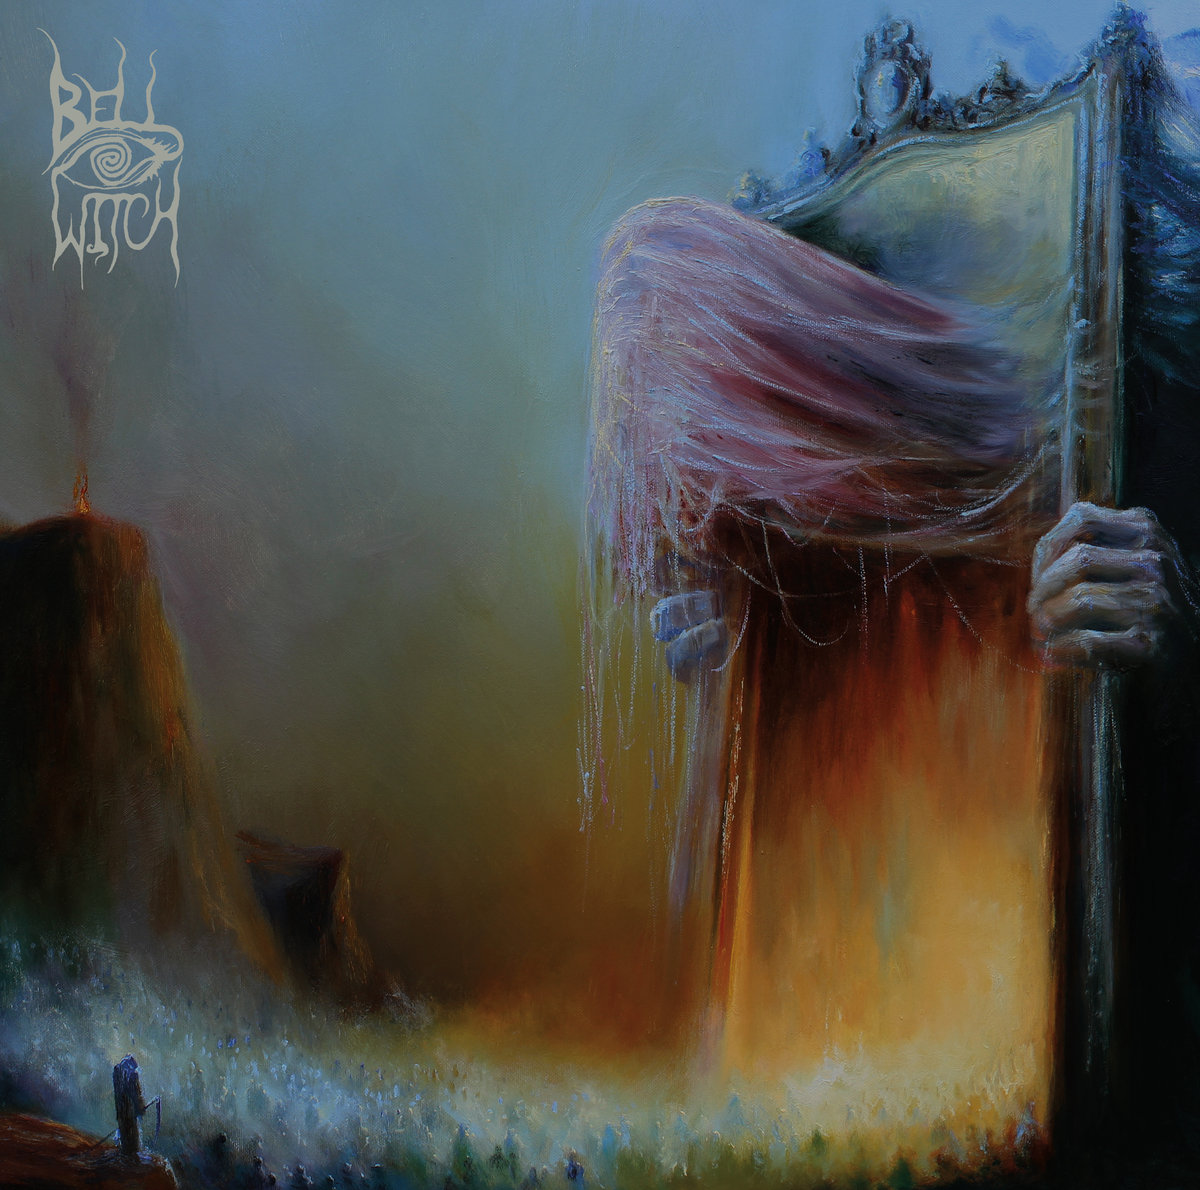 Bell Witch • Mirror Reaper